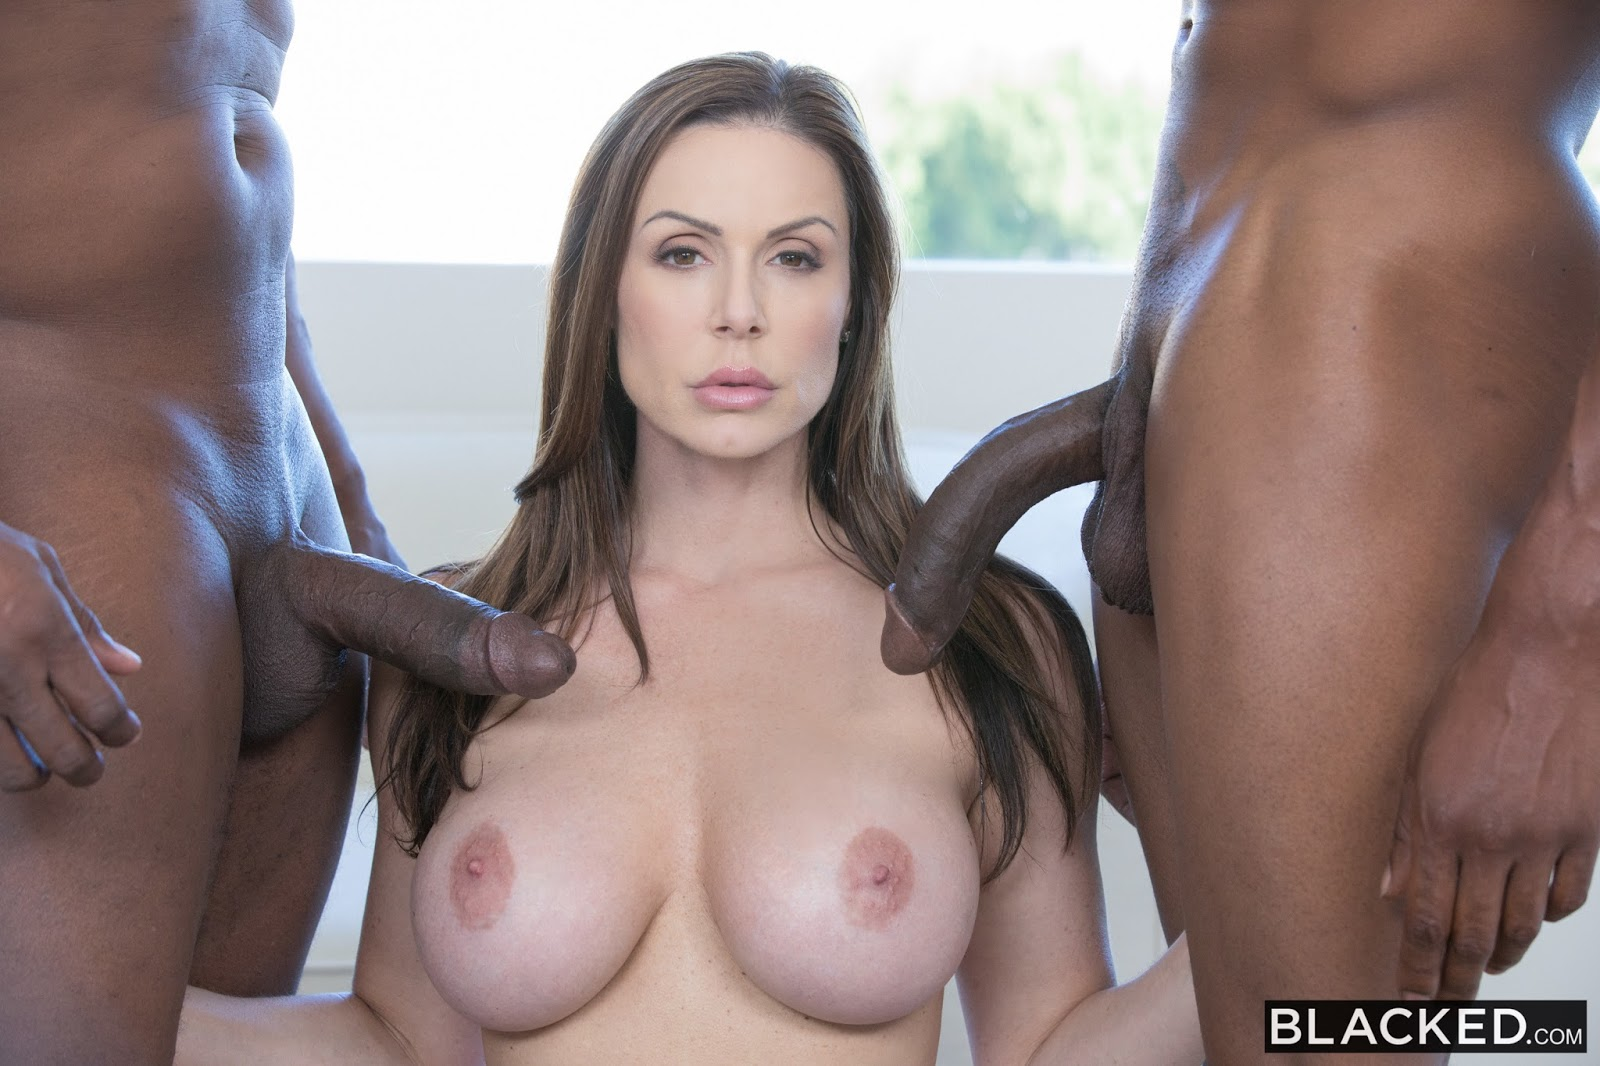 kendra lust blacked